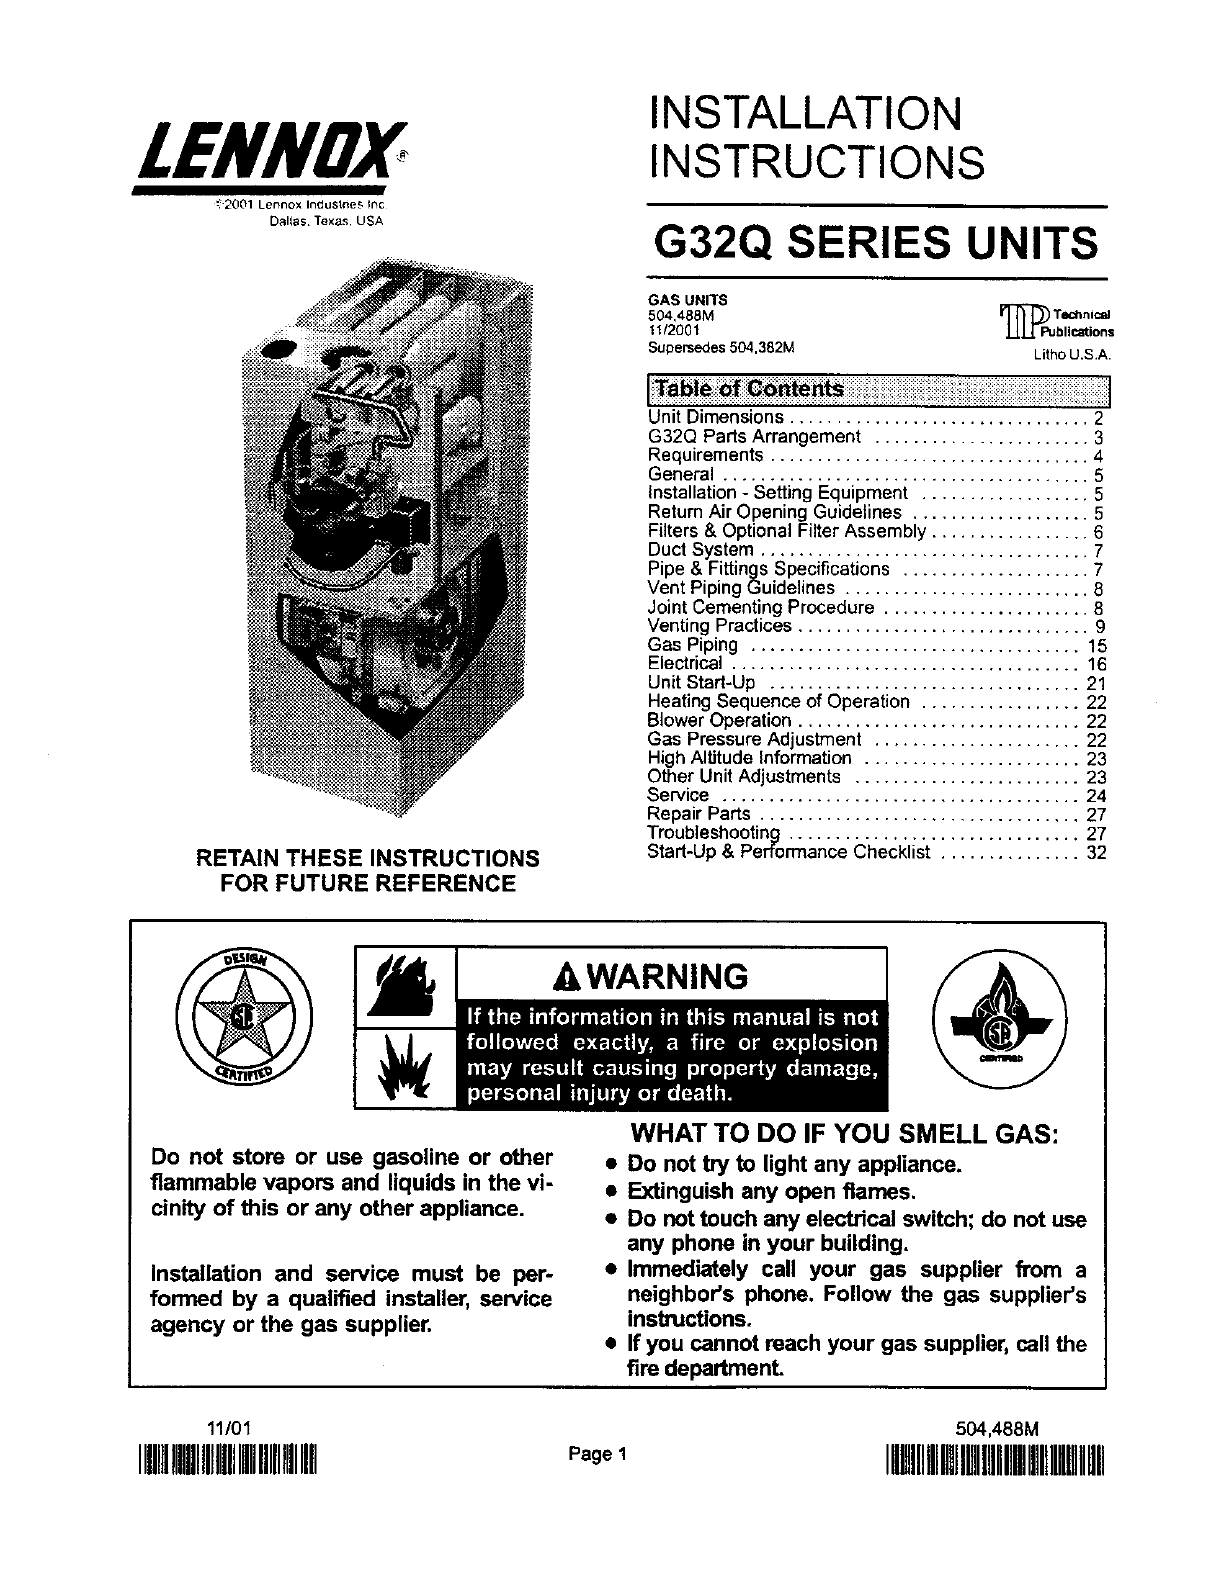 Lennox Gas Furnace Owner Manual - User Guide Manual That Easy-to-read •